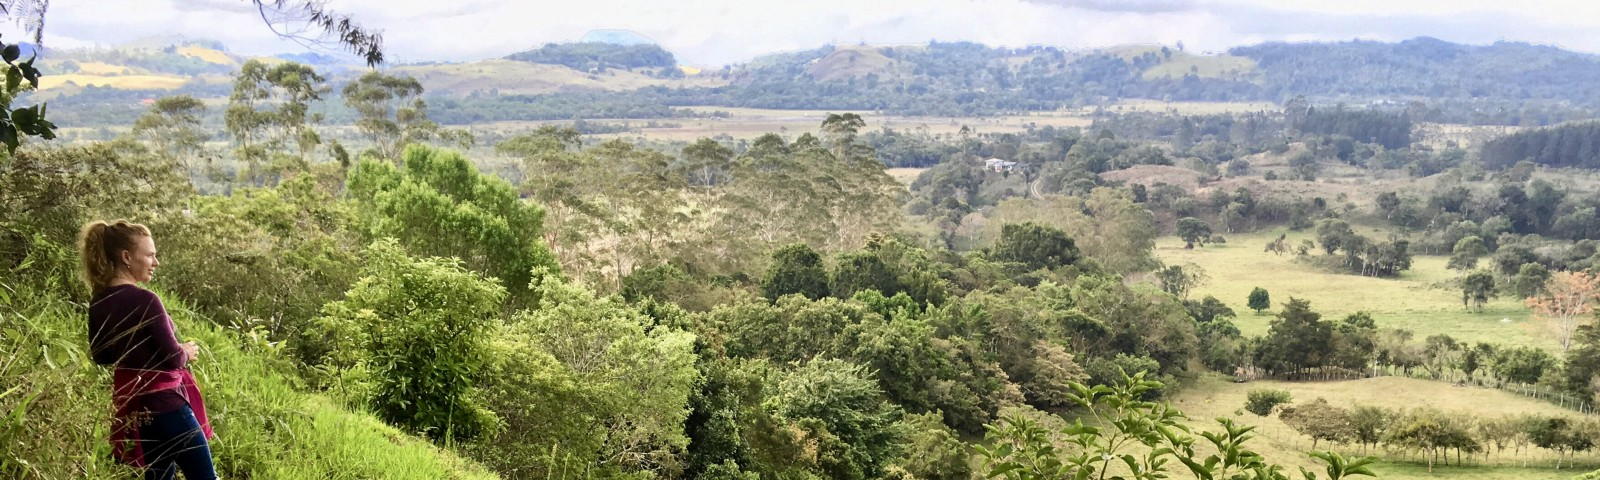 Woman stands on Panama hillside looking out over landscape. personal development mental health retire early life lessons